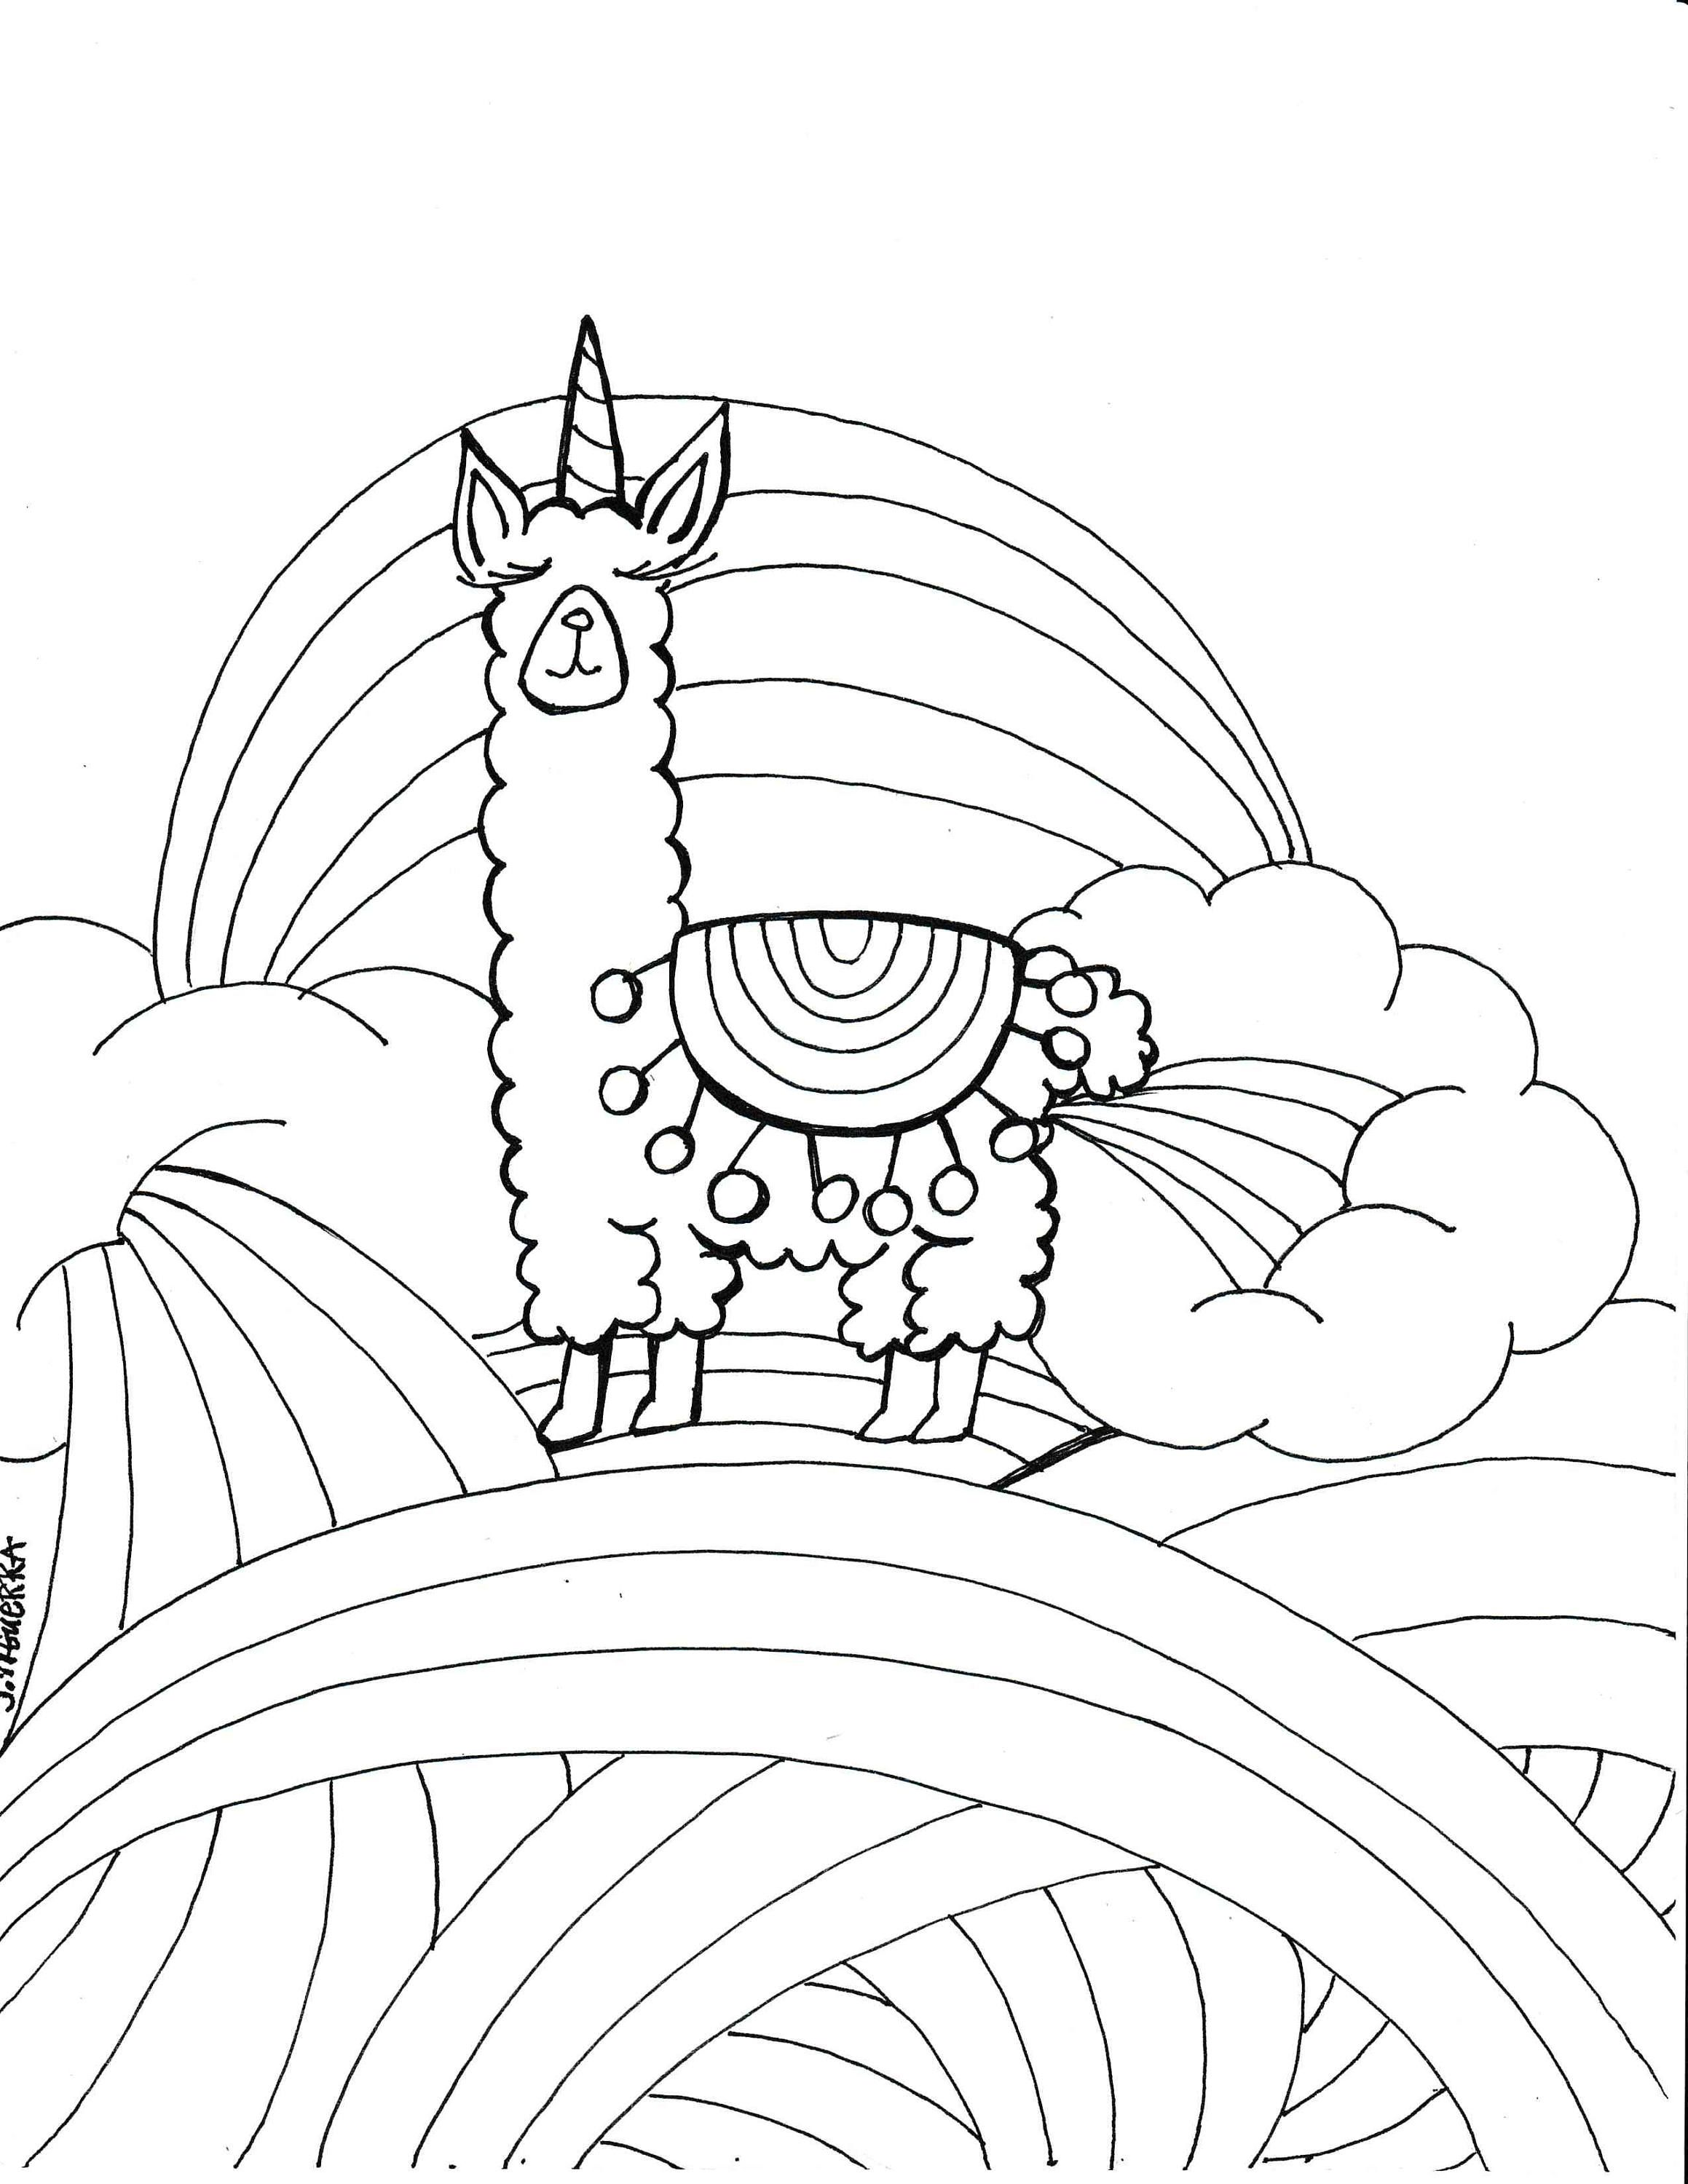 Llamacorn Coloring Page Printable Art By Journalingart